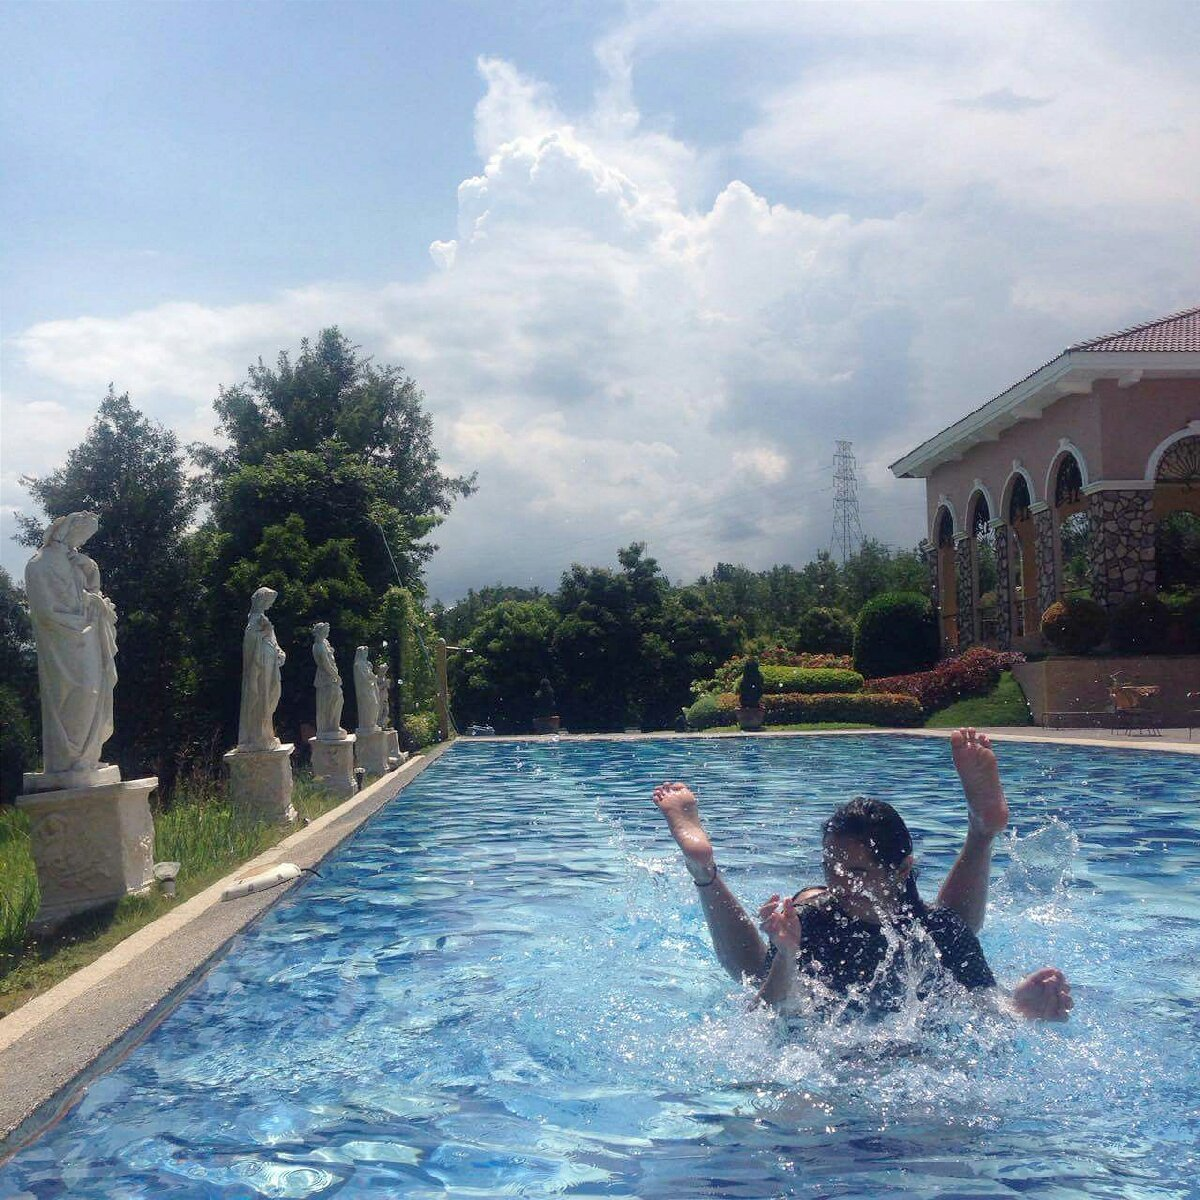 @Talisay Azienda Milan //Enjoying our day, playing at the pool ??